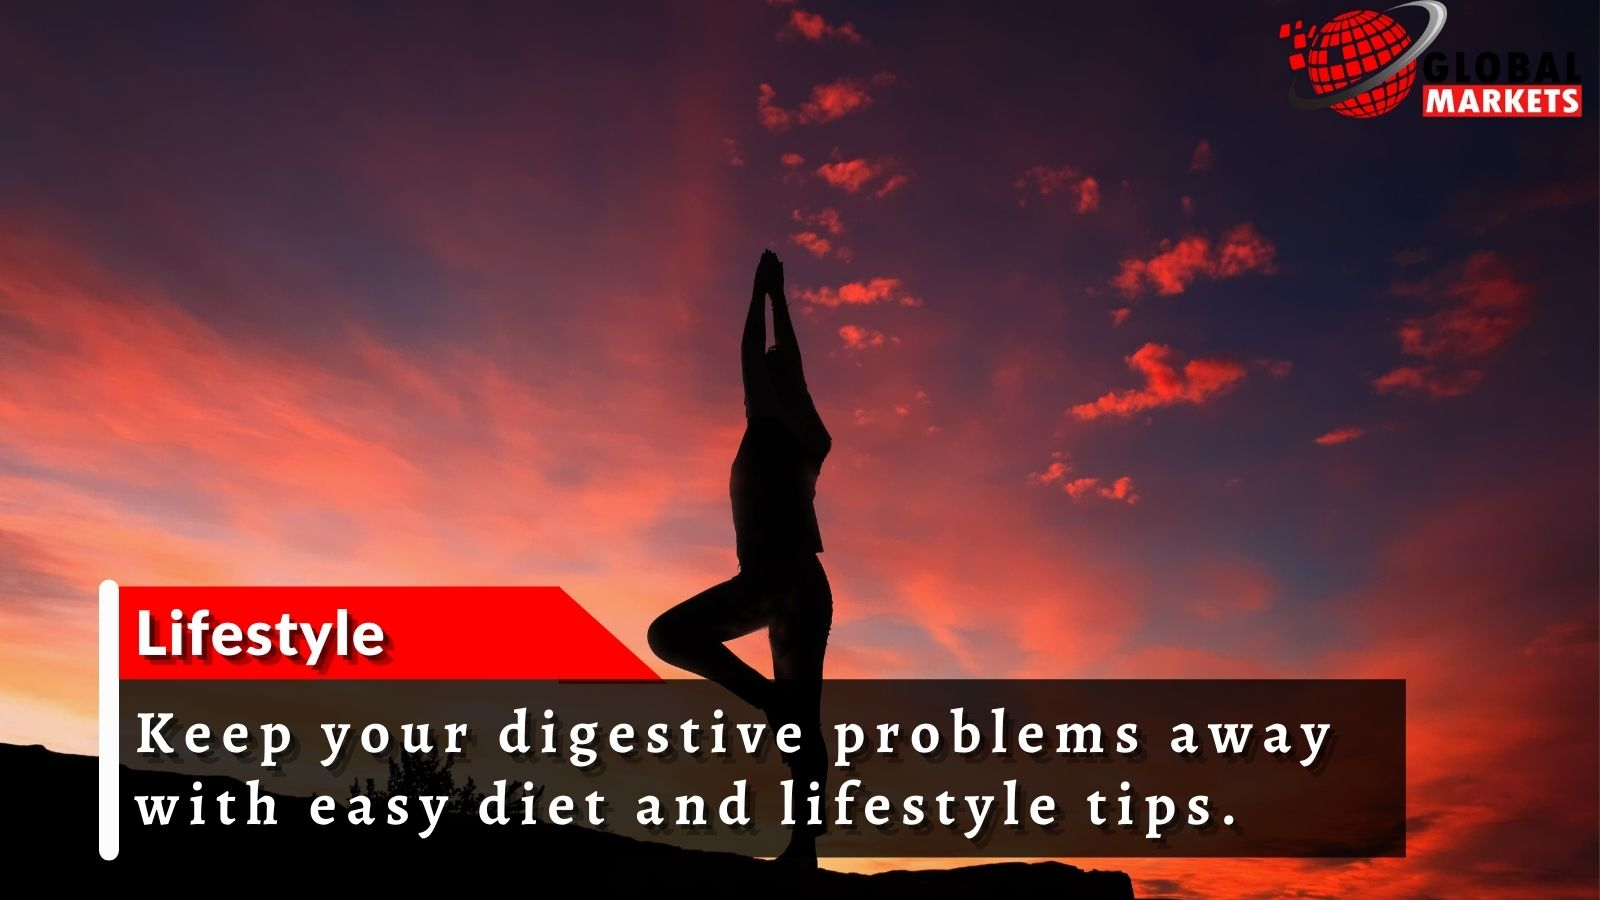 Keep your digestive problems away with easy diet and lifestyle tips.